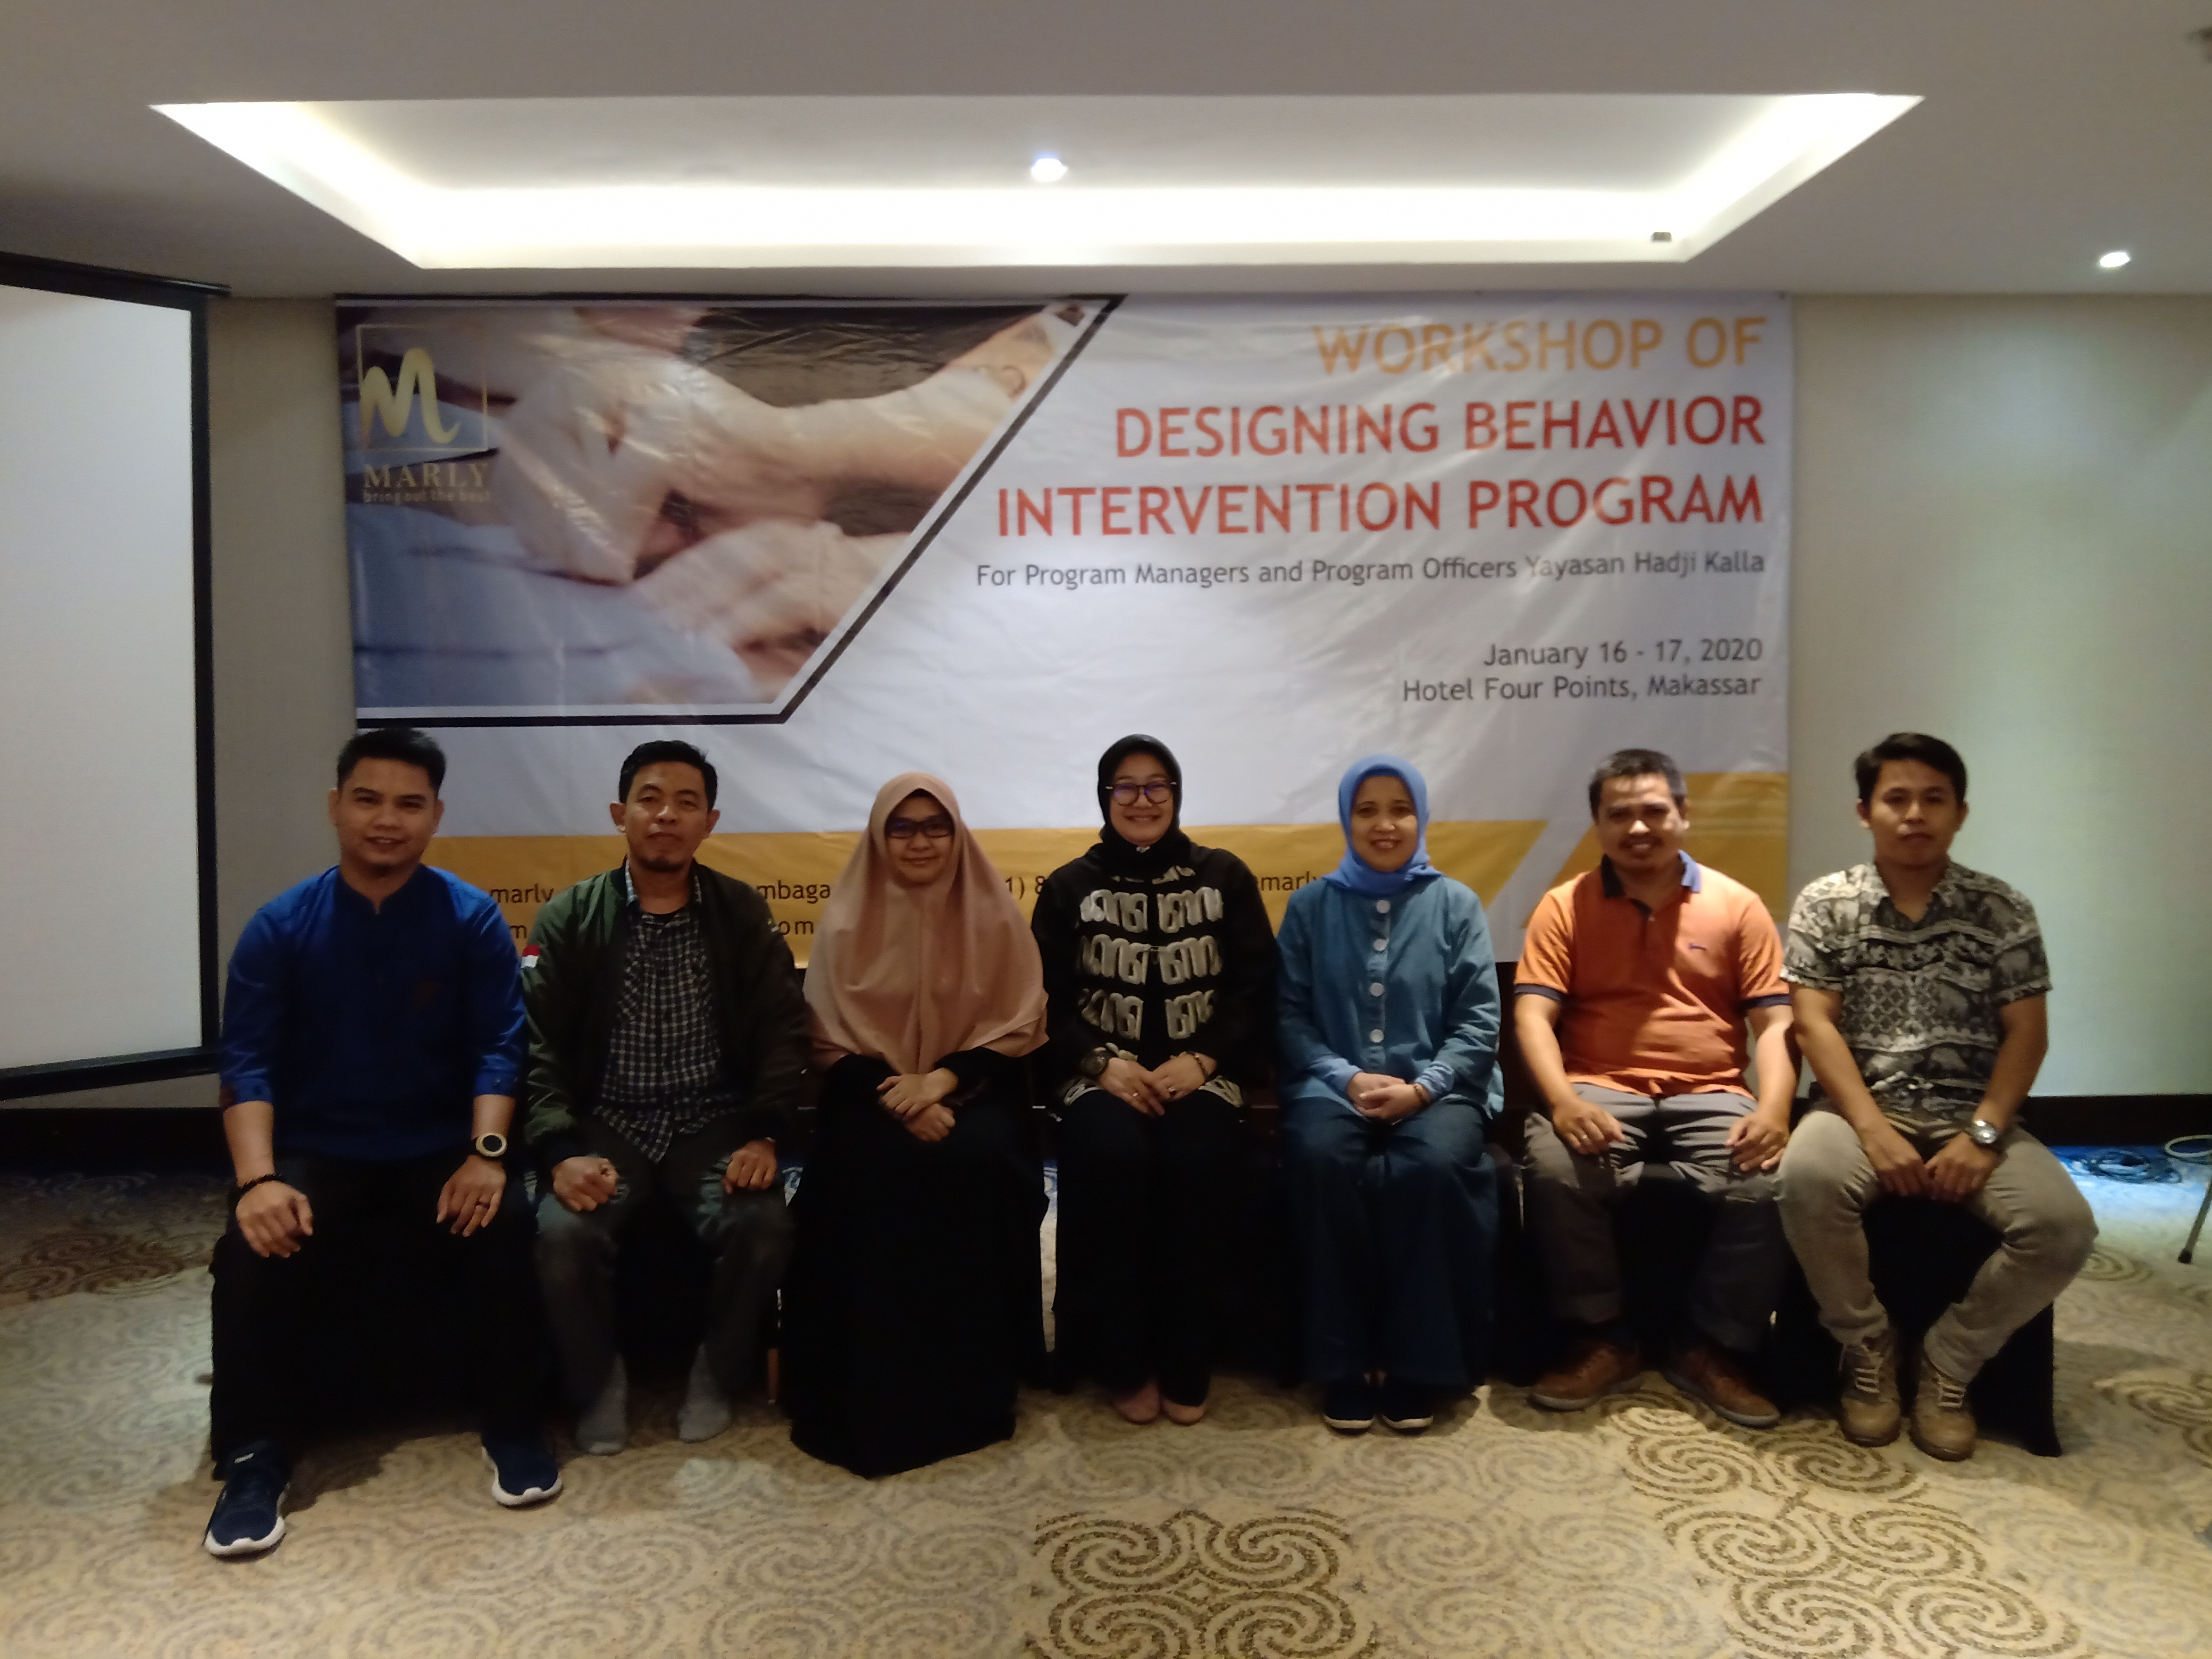 [BERITA FOTO] : TRAINING TIM YAYASAN HADJI KALLA DENGAN TEMA DESIGNING BEHAVIOR INTERVENTION PROGRAM